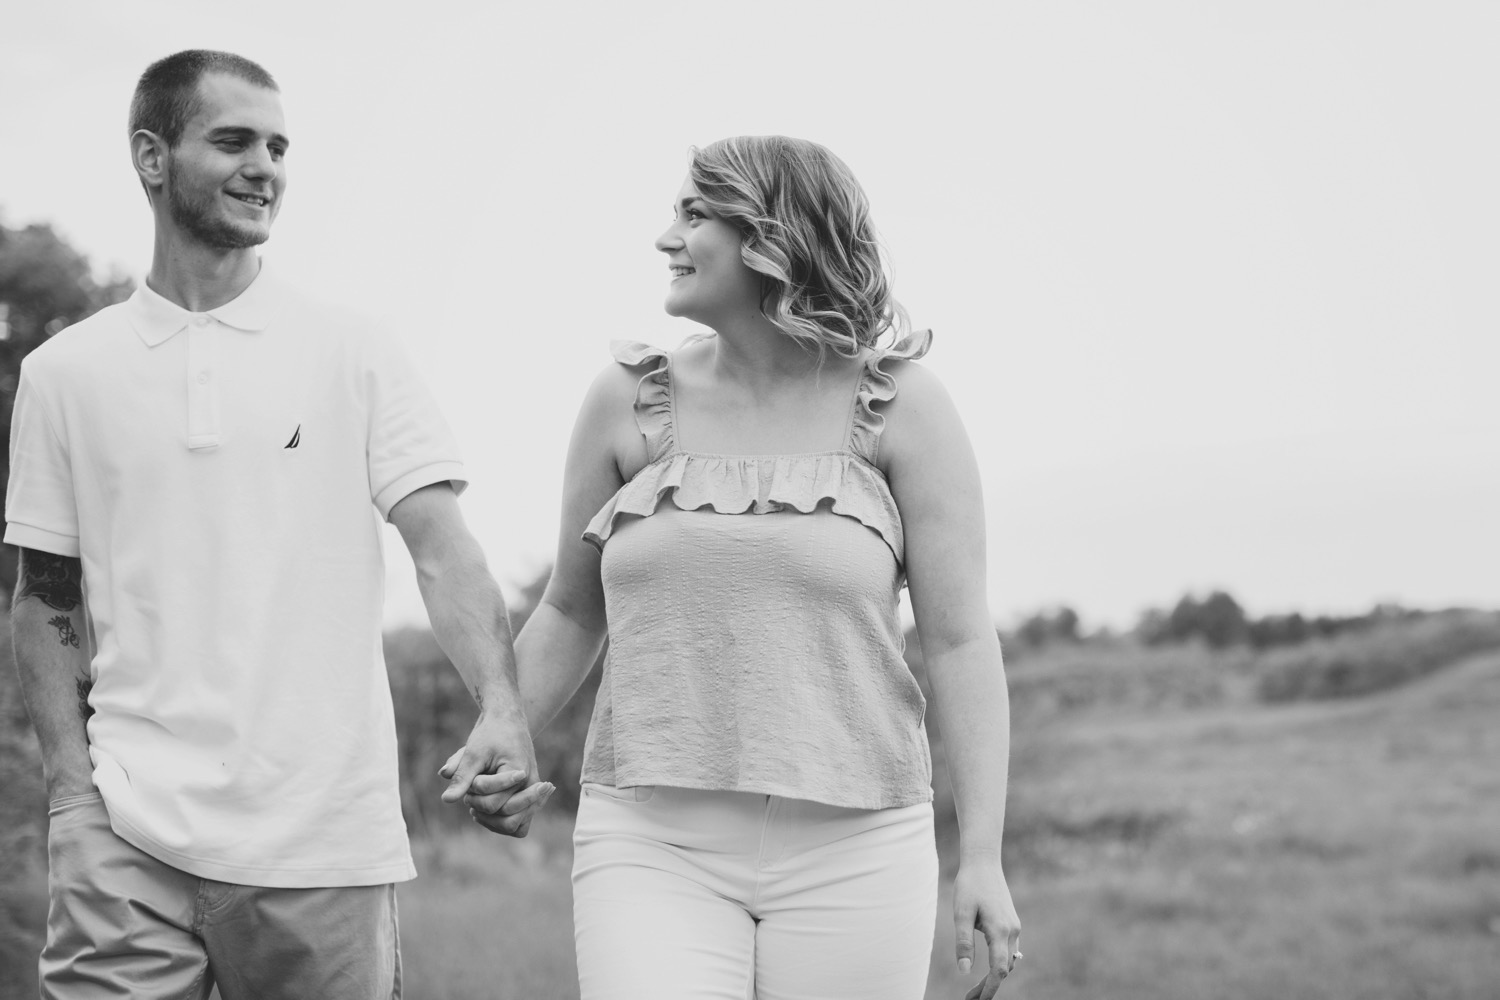 03_DowneyENG_06_nhphotographer_engagement_loudon_couples_dreambigphotography_loudonnh_dreambignh_wedding.jpg